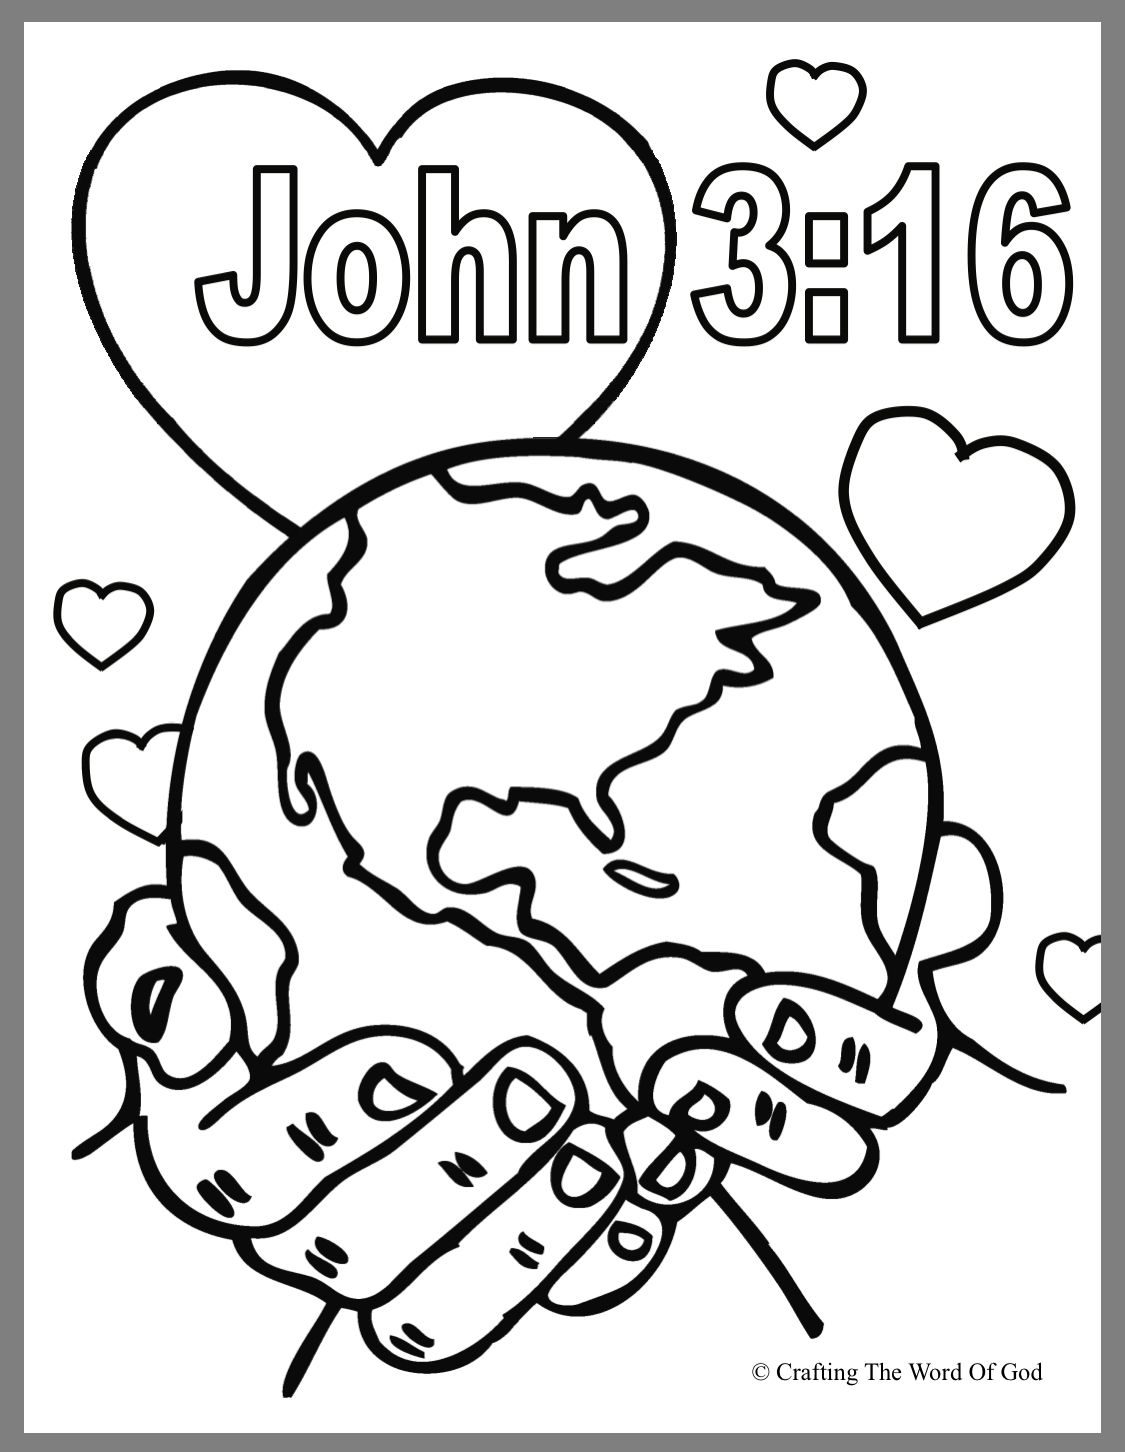 Coloring Pages Sunday School Coloring Pages School Coloring